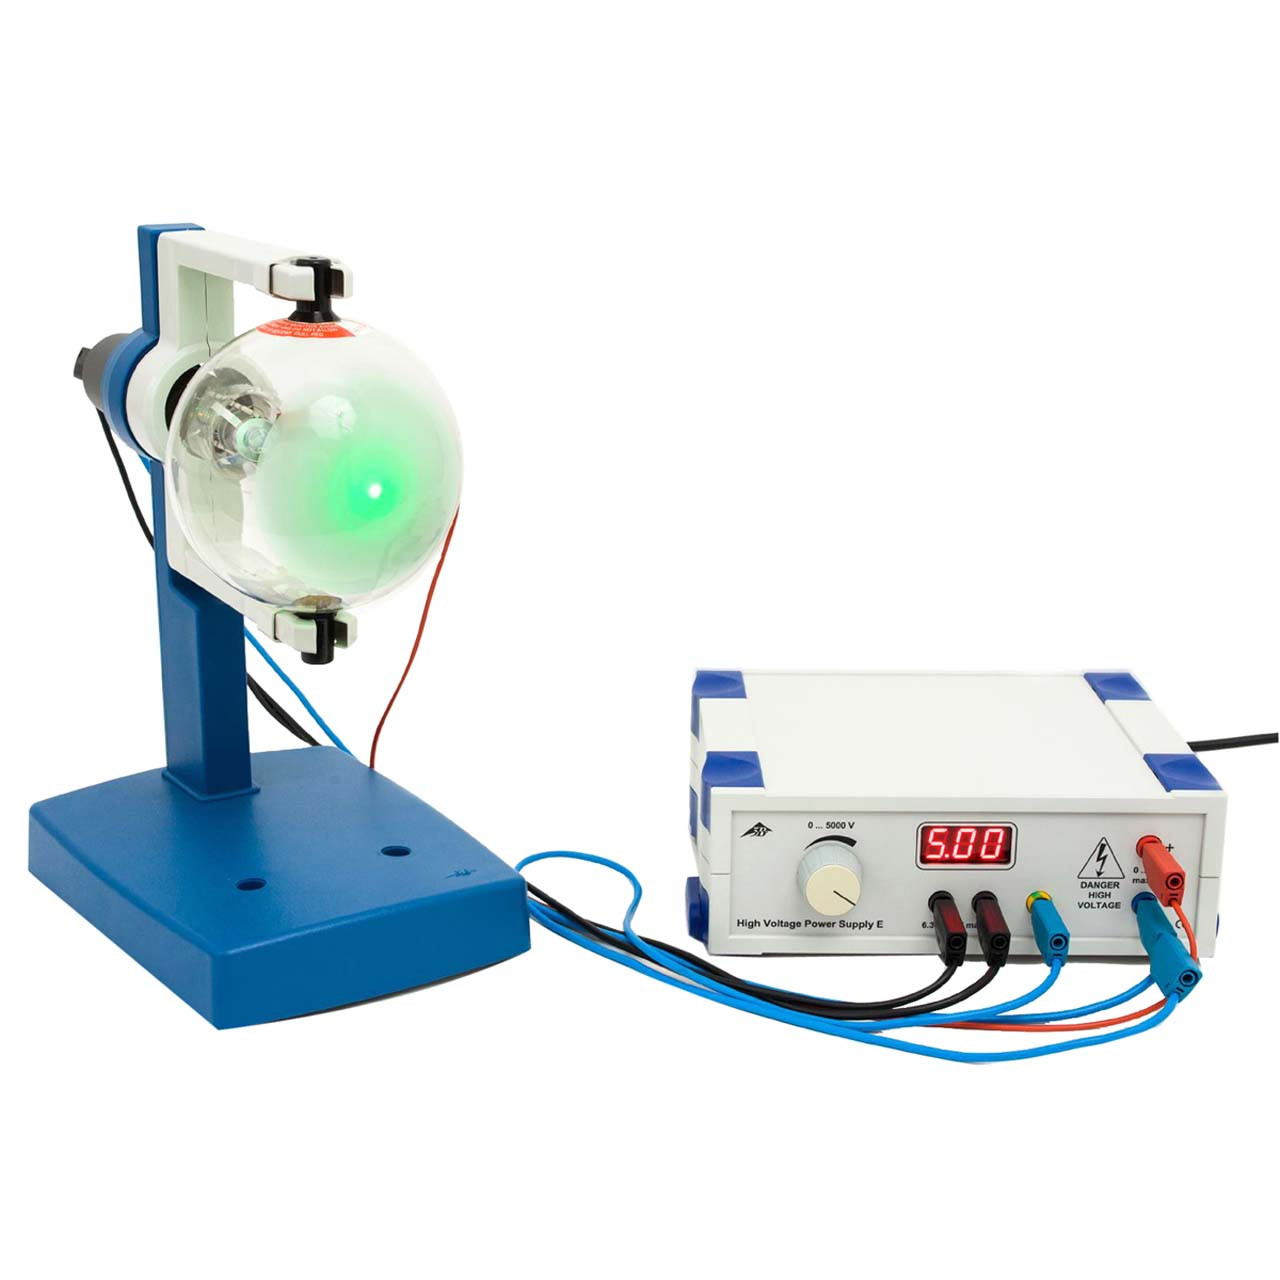 1013885 - Electron Diffraction Tube D